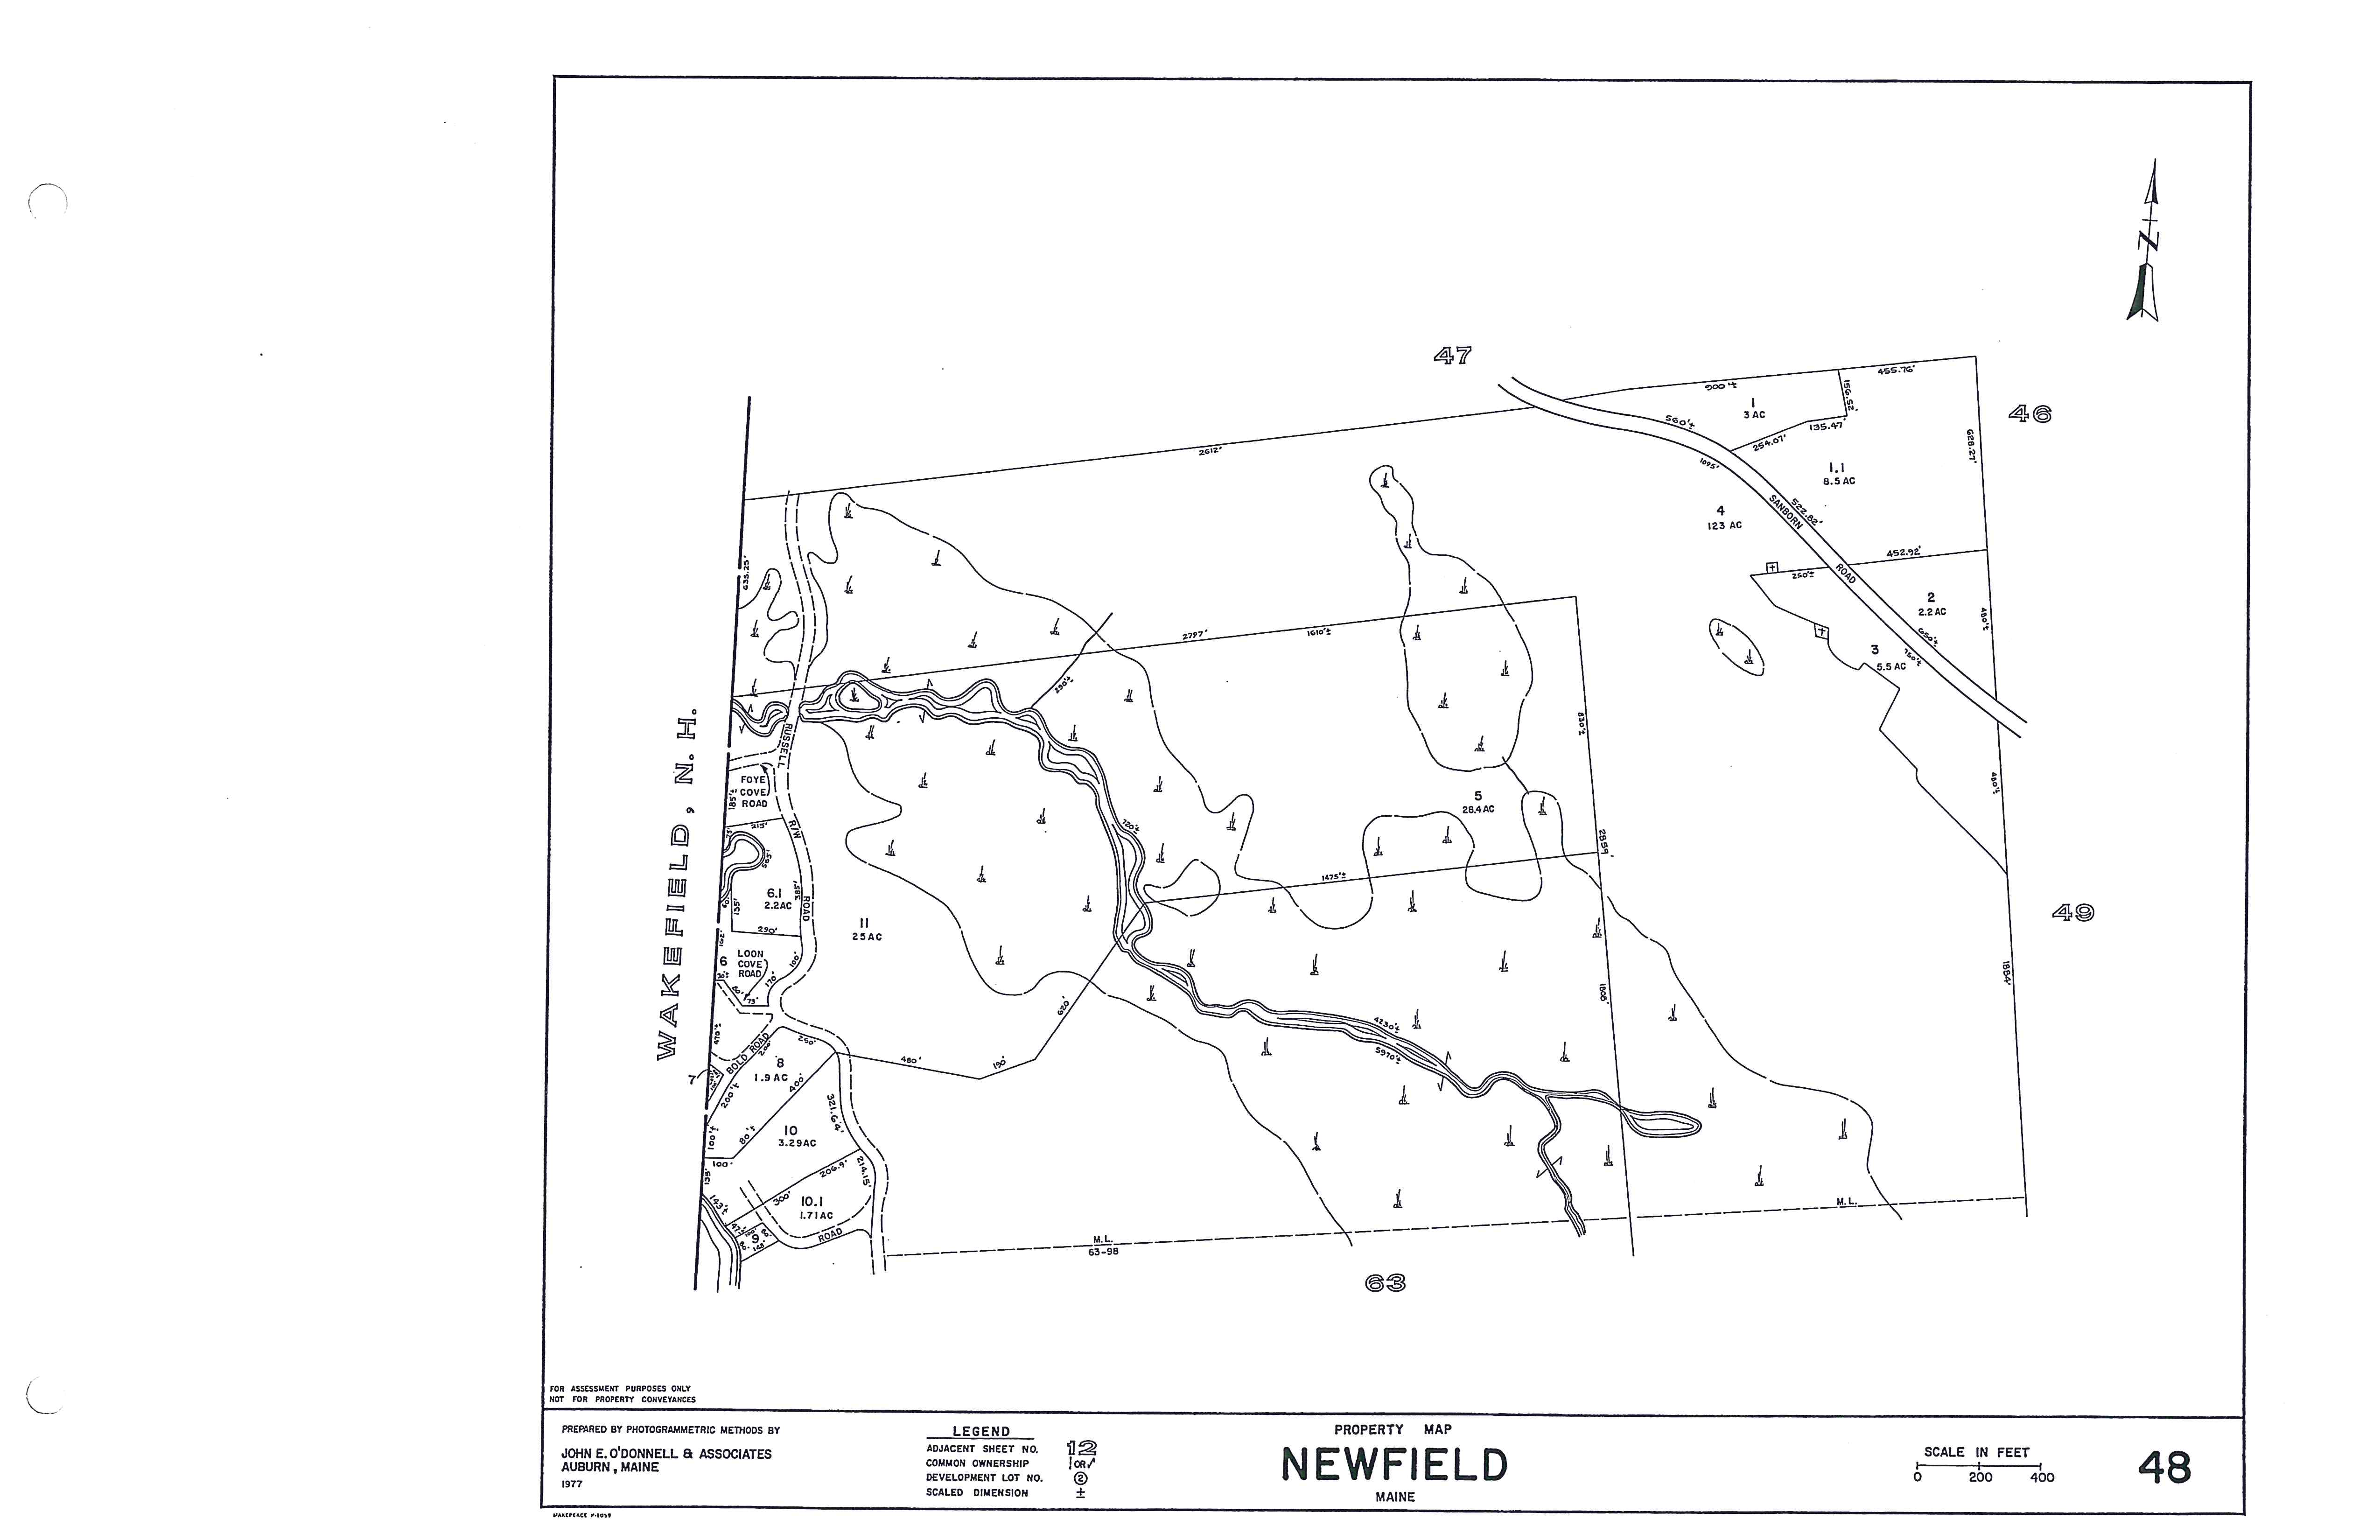 PROPERTY TAX MAPS - Town of Newfield - Town of Newfield on